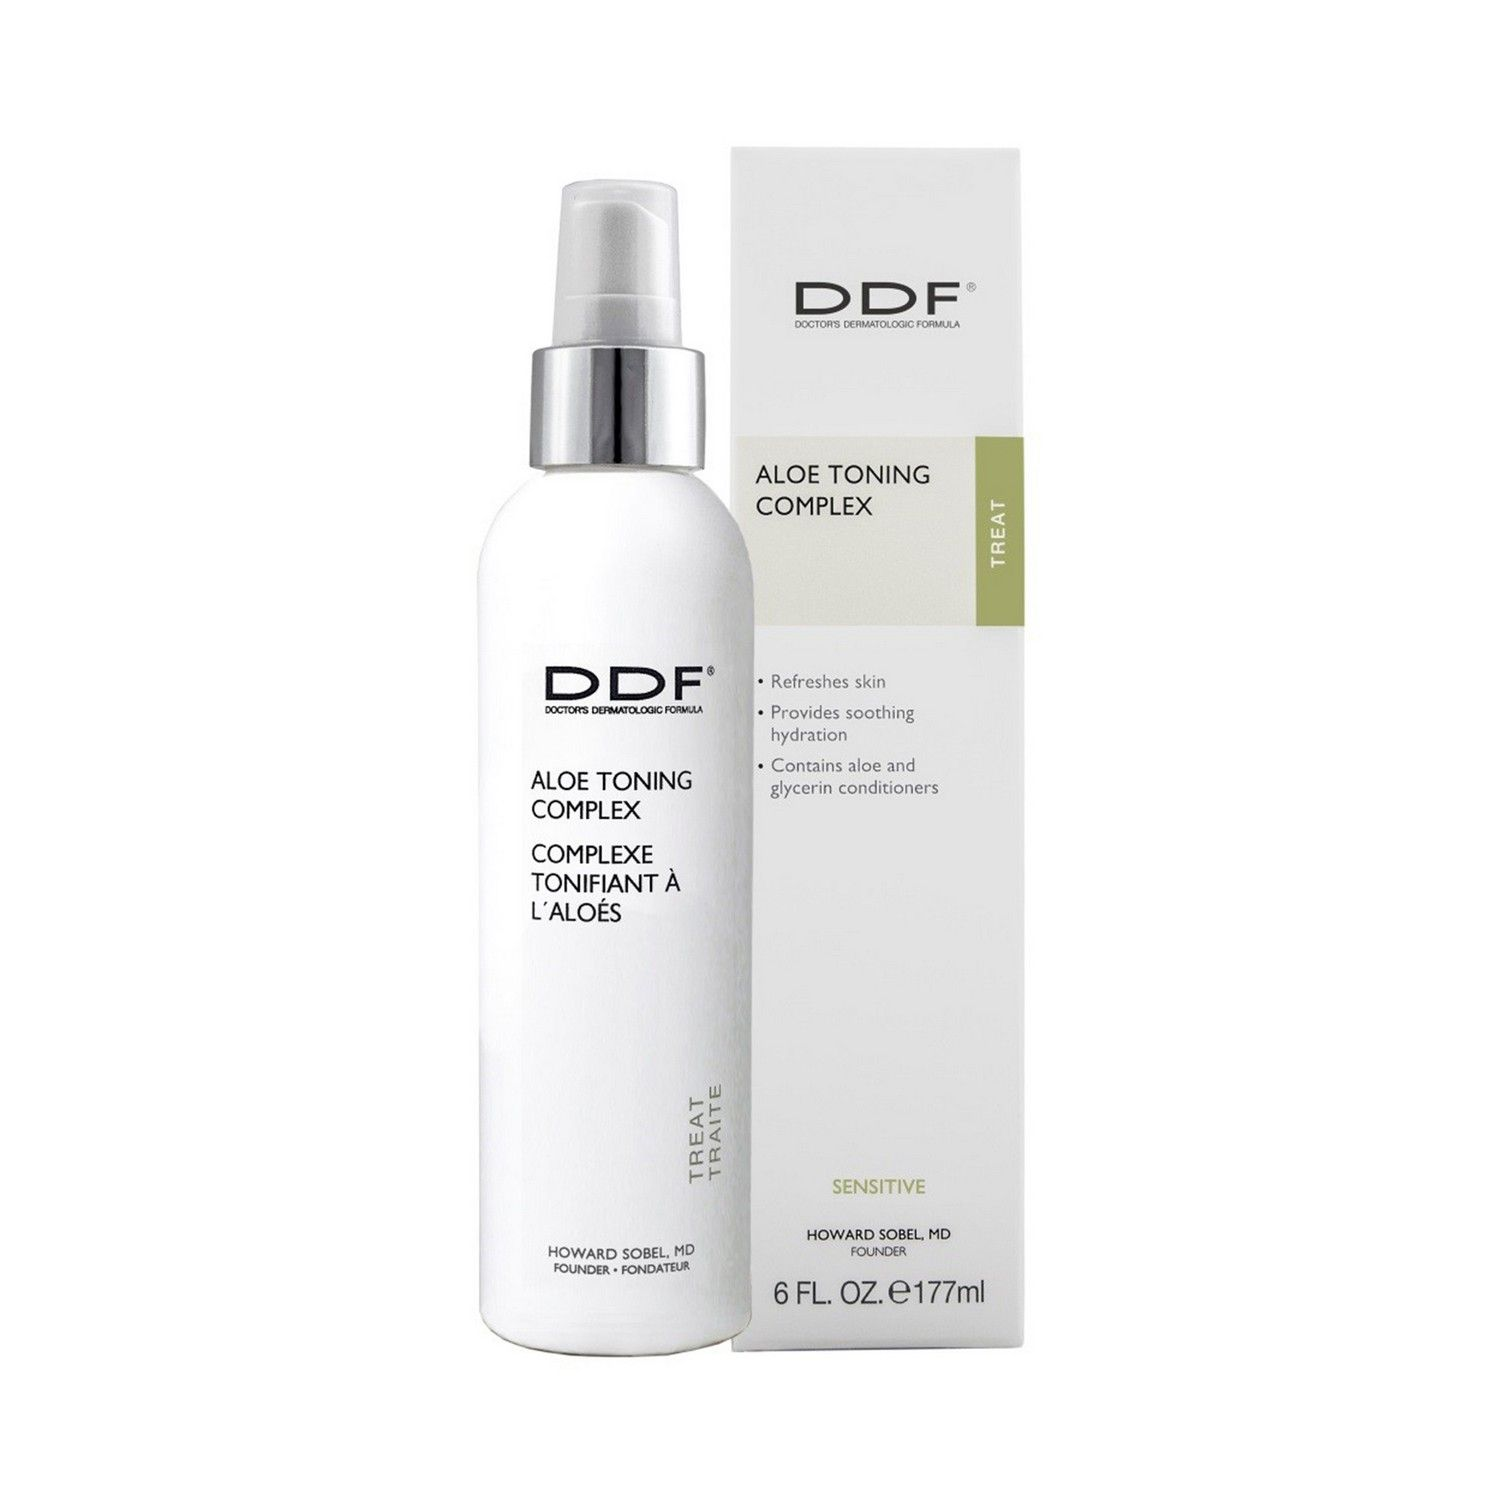 DDF ALOE TONING COMPLEX (6.0 fl oz / 177 ml)